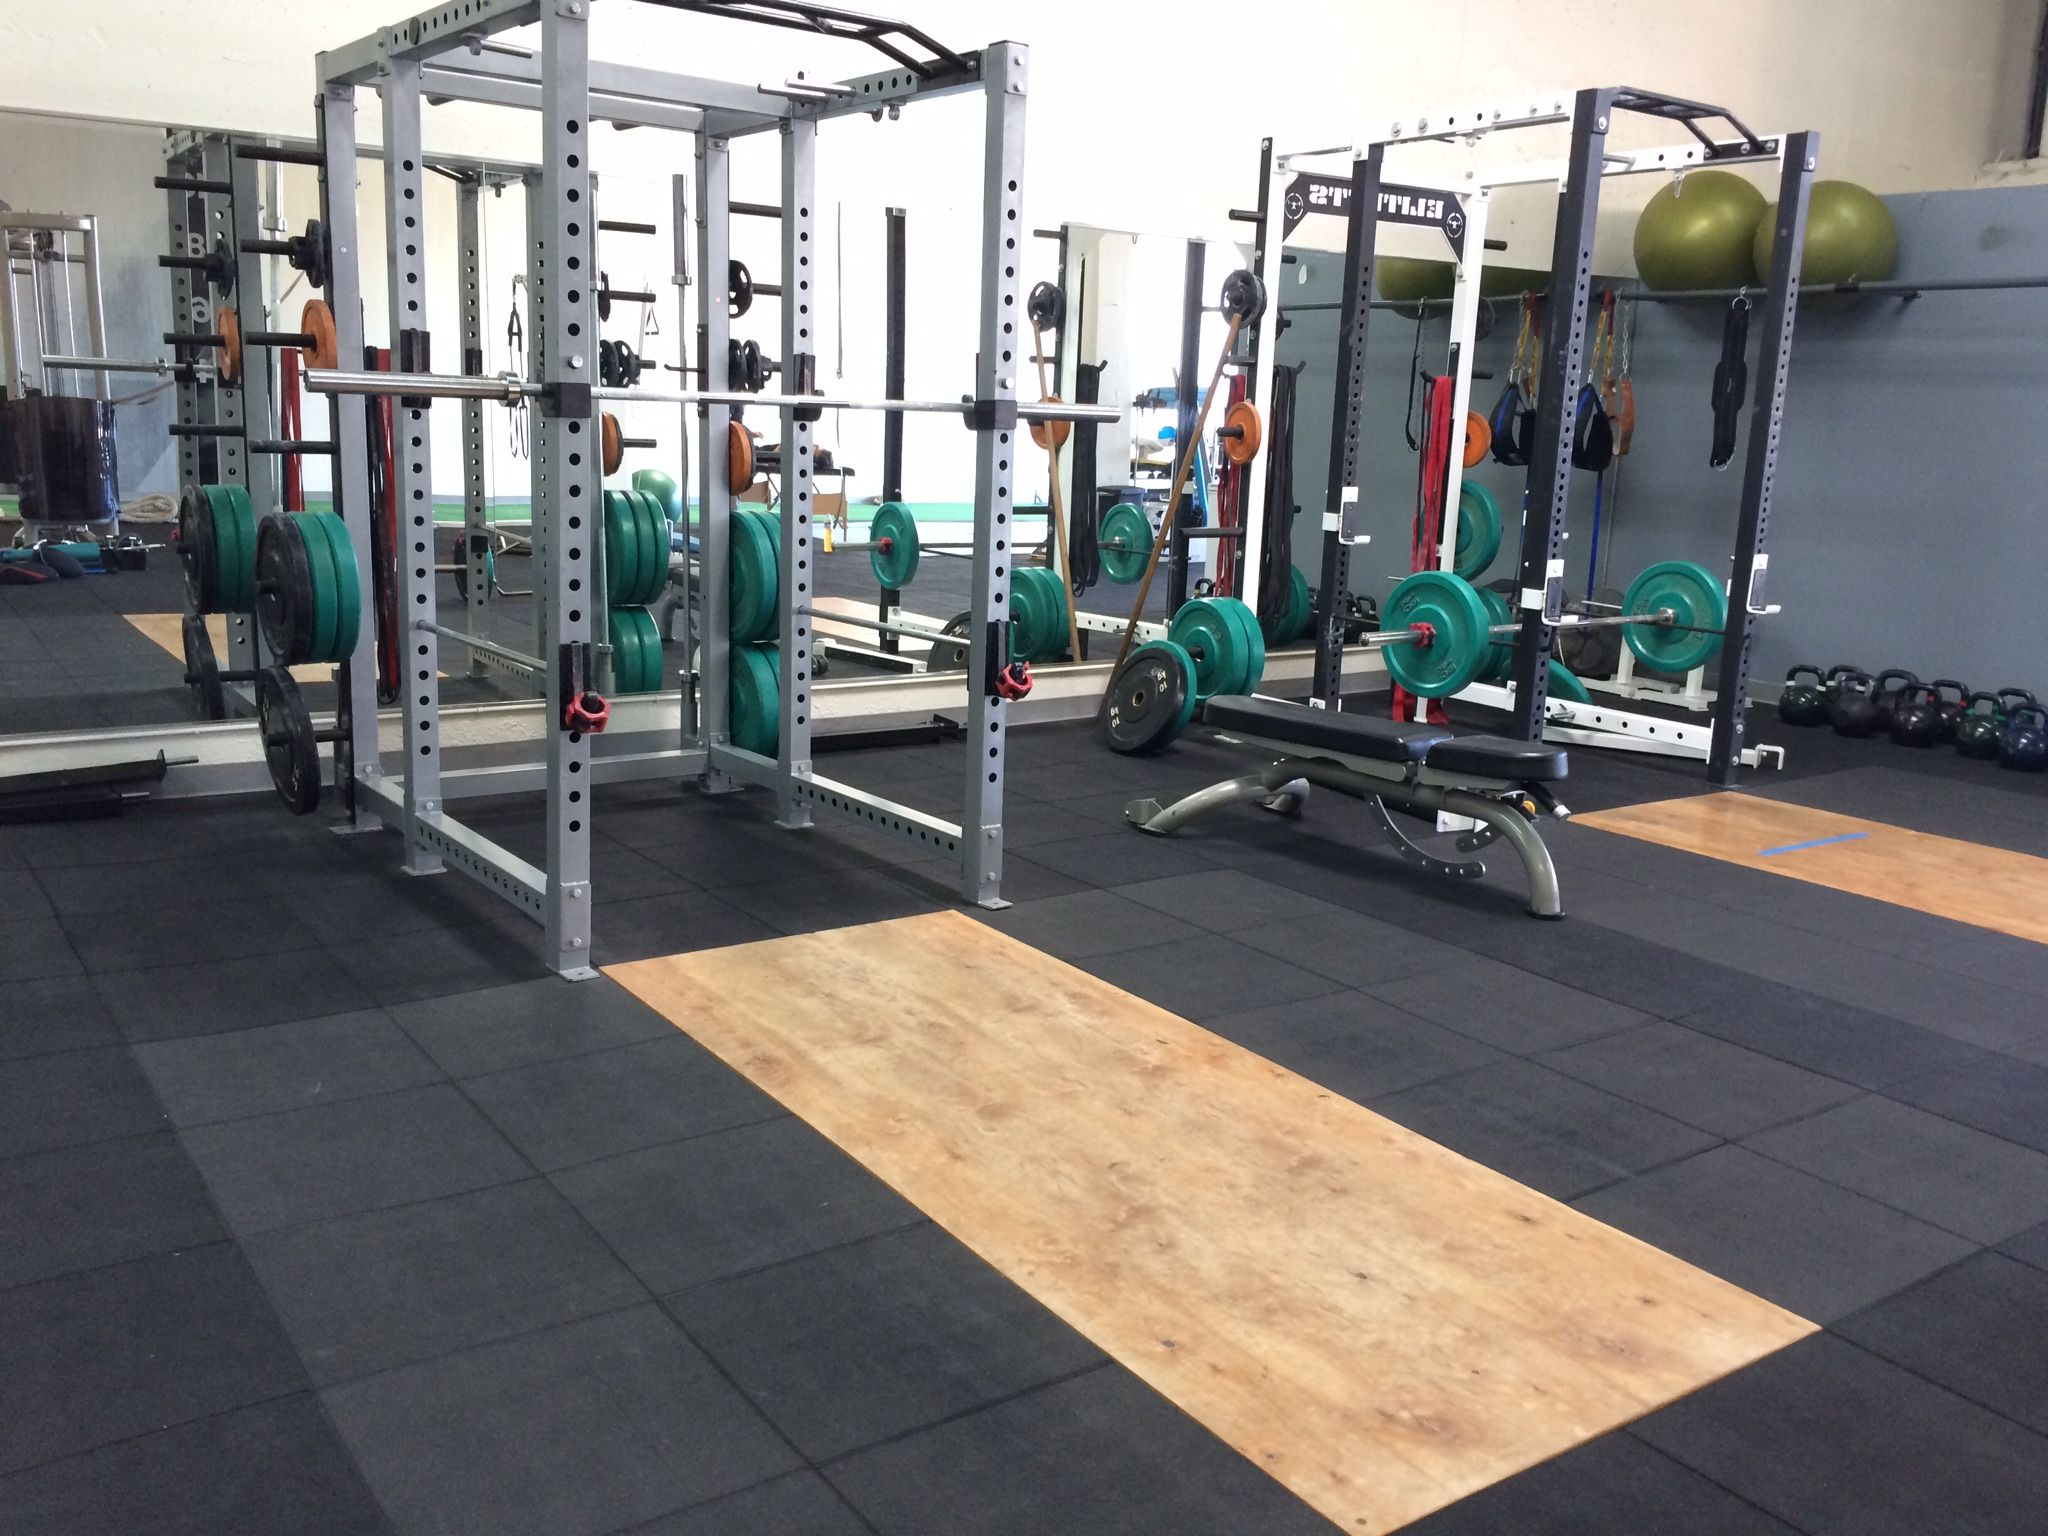 Olympic weight lifting platform with full size squat rack